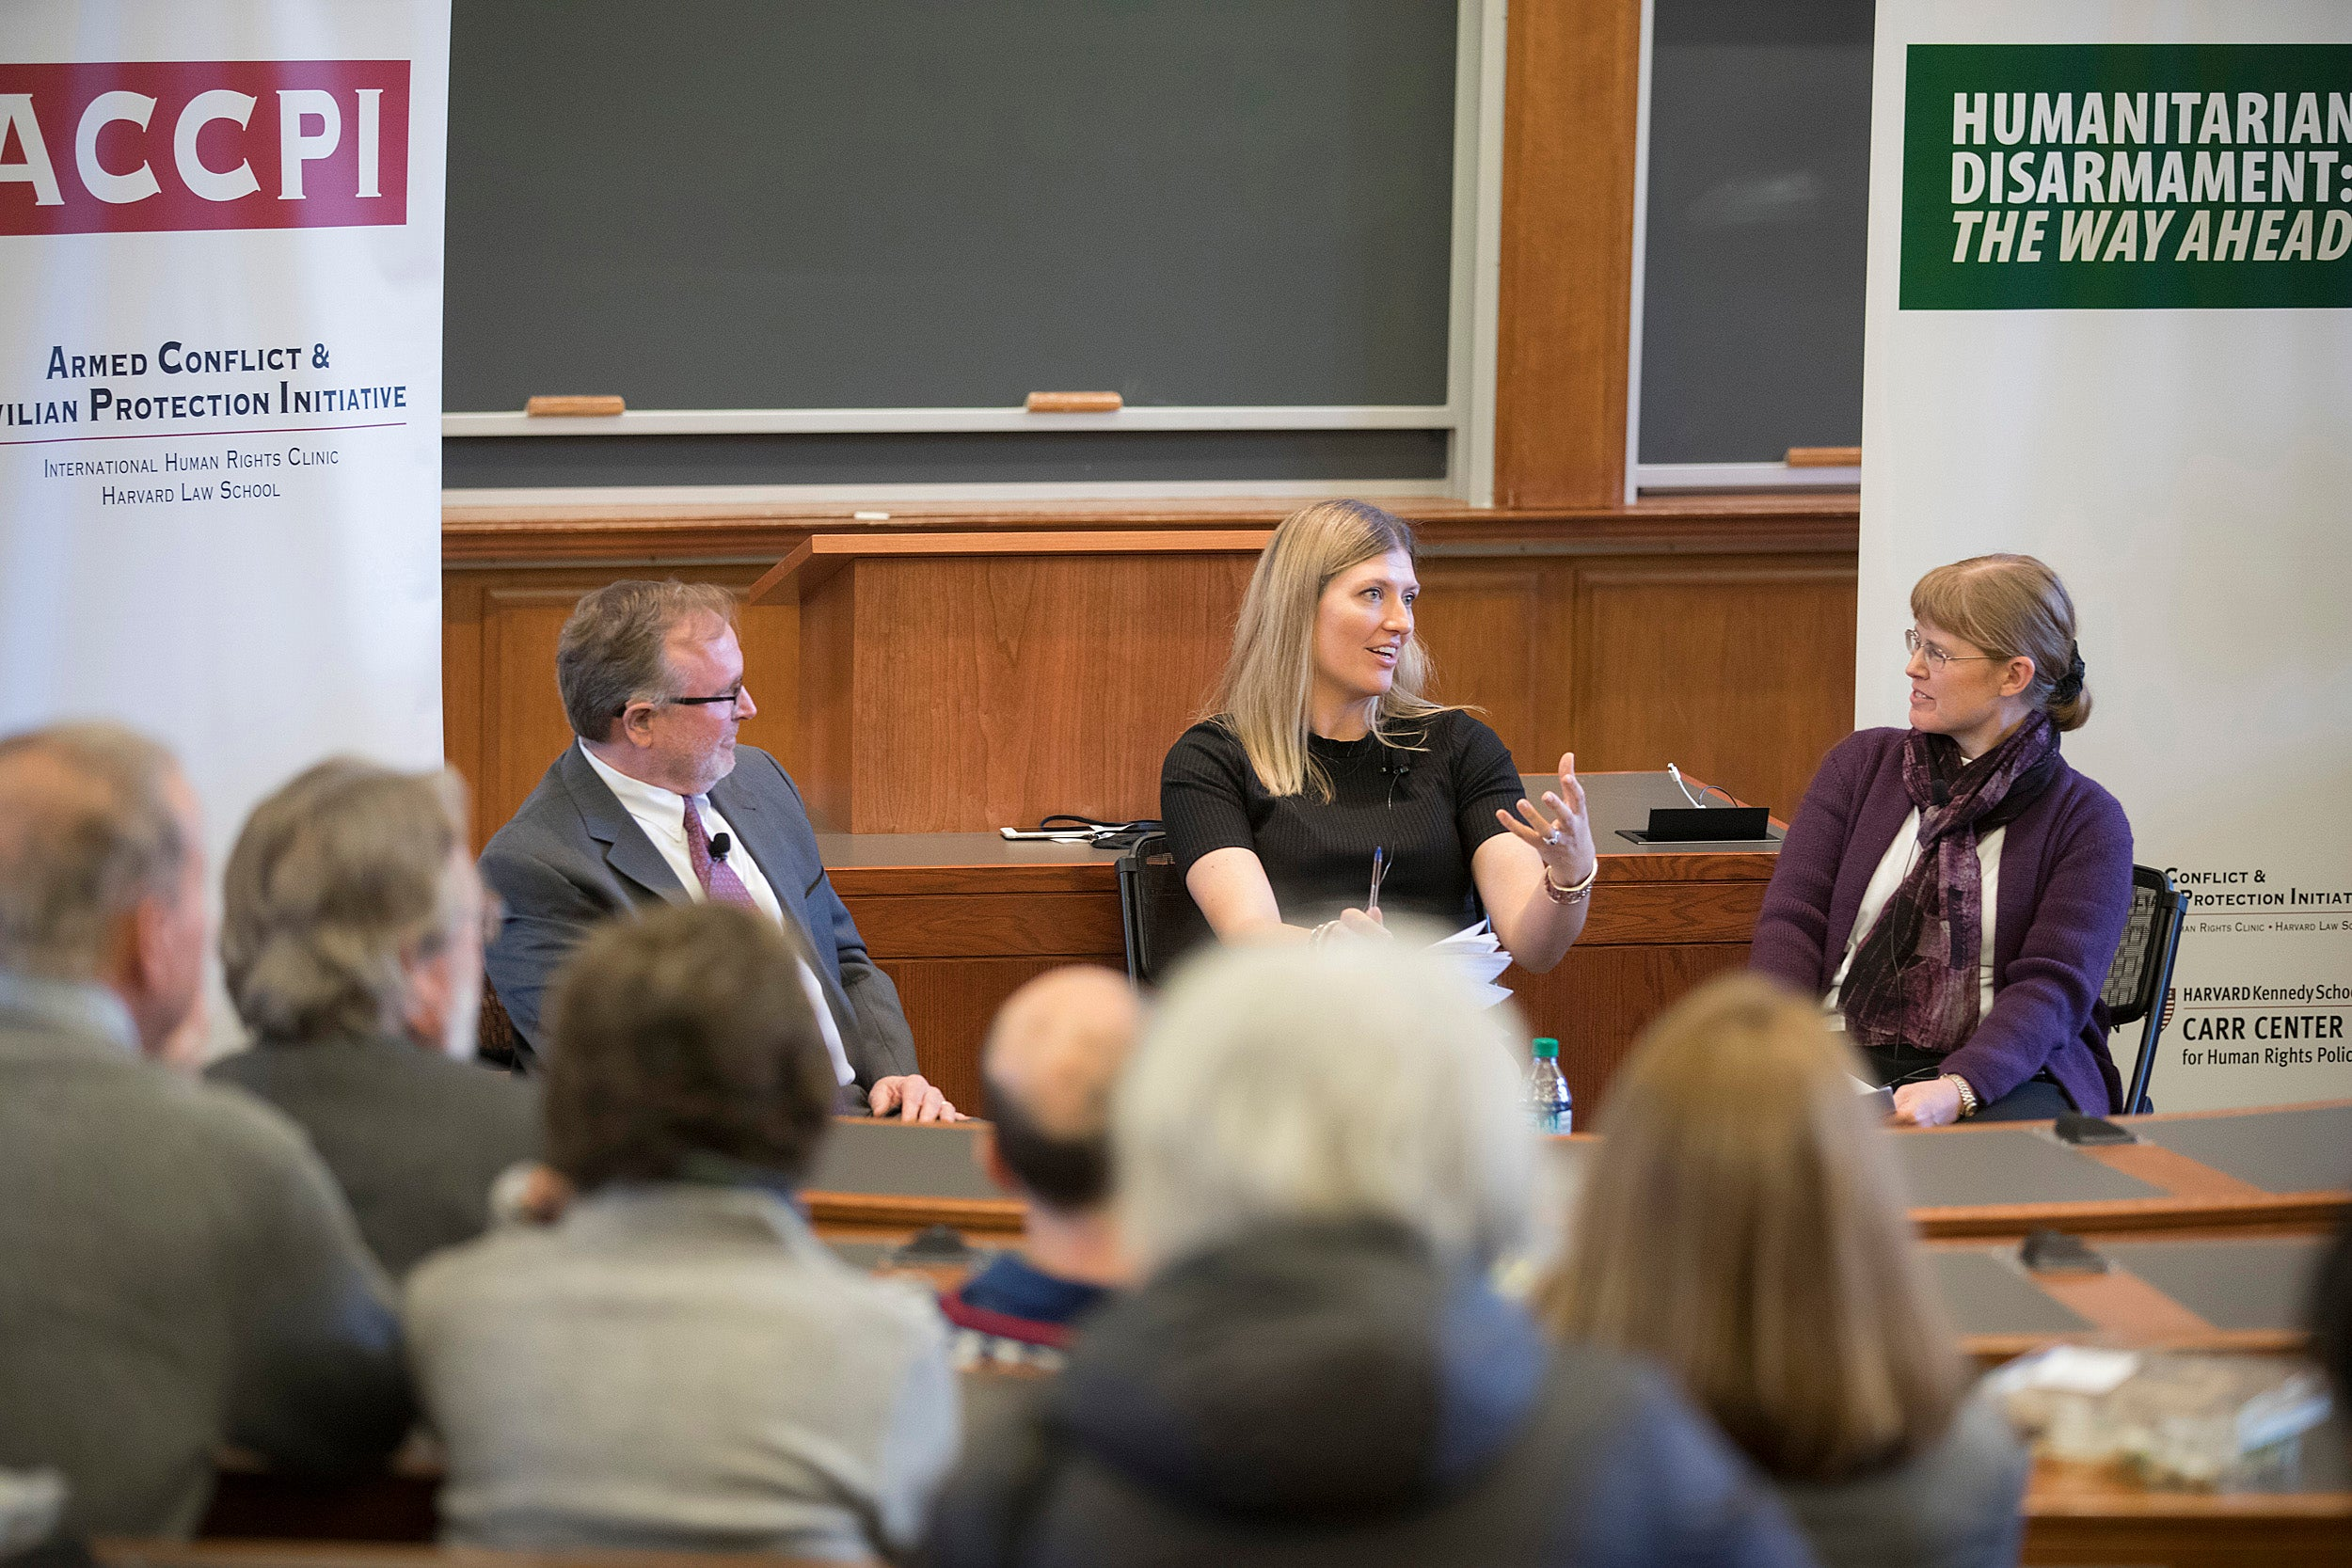 """During """"From Landmines to Nuclear Weapons,"""" a panel featuring Steve Goose (from left) and Beatrice Fihn and moderated by Bonnie Docherty of the Law School addressed the origins and evolution of humanitarian disarmament while reflecting on their roles negotiating treaties that ban landmines, cluster munitions, and nuclear weapons."""